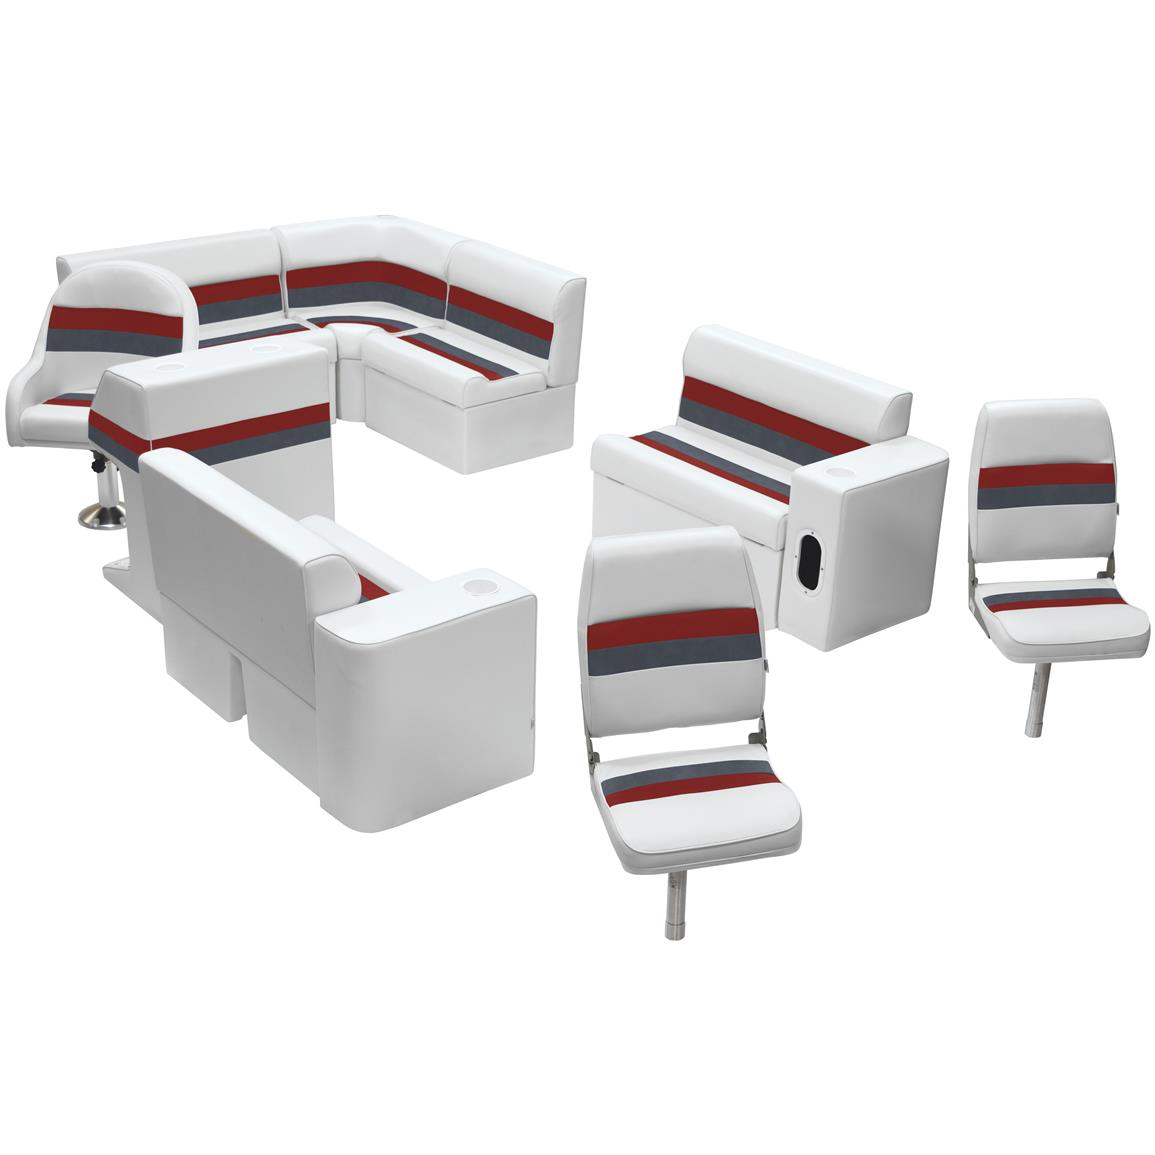 Wise® Deluxe Pontoon Complete Fishing Boat Seating Group, Color B: White / Charcoal / Red